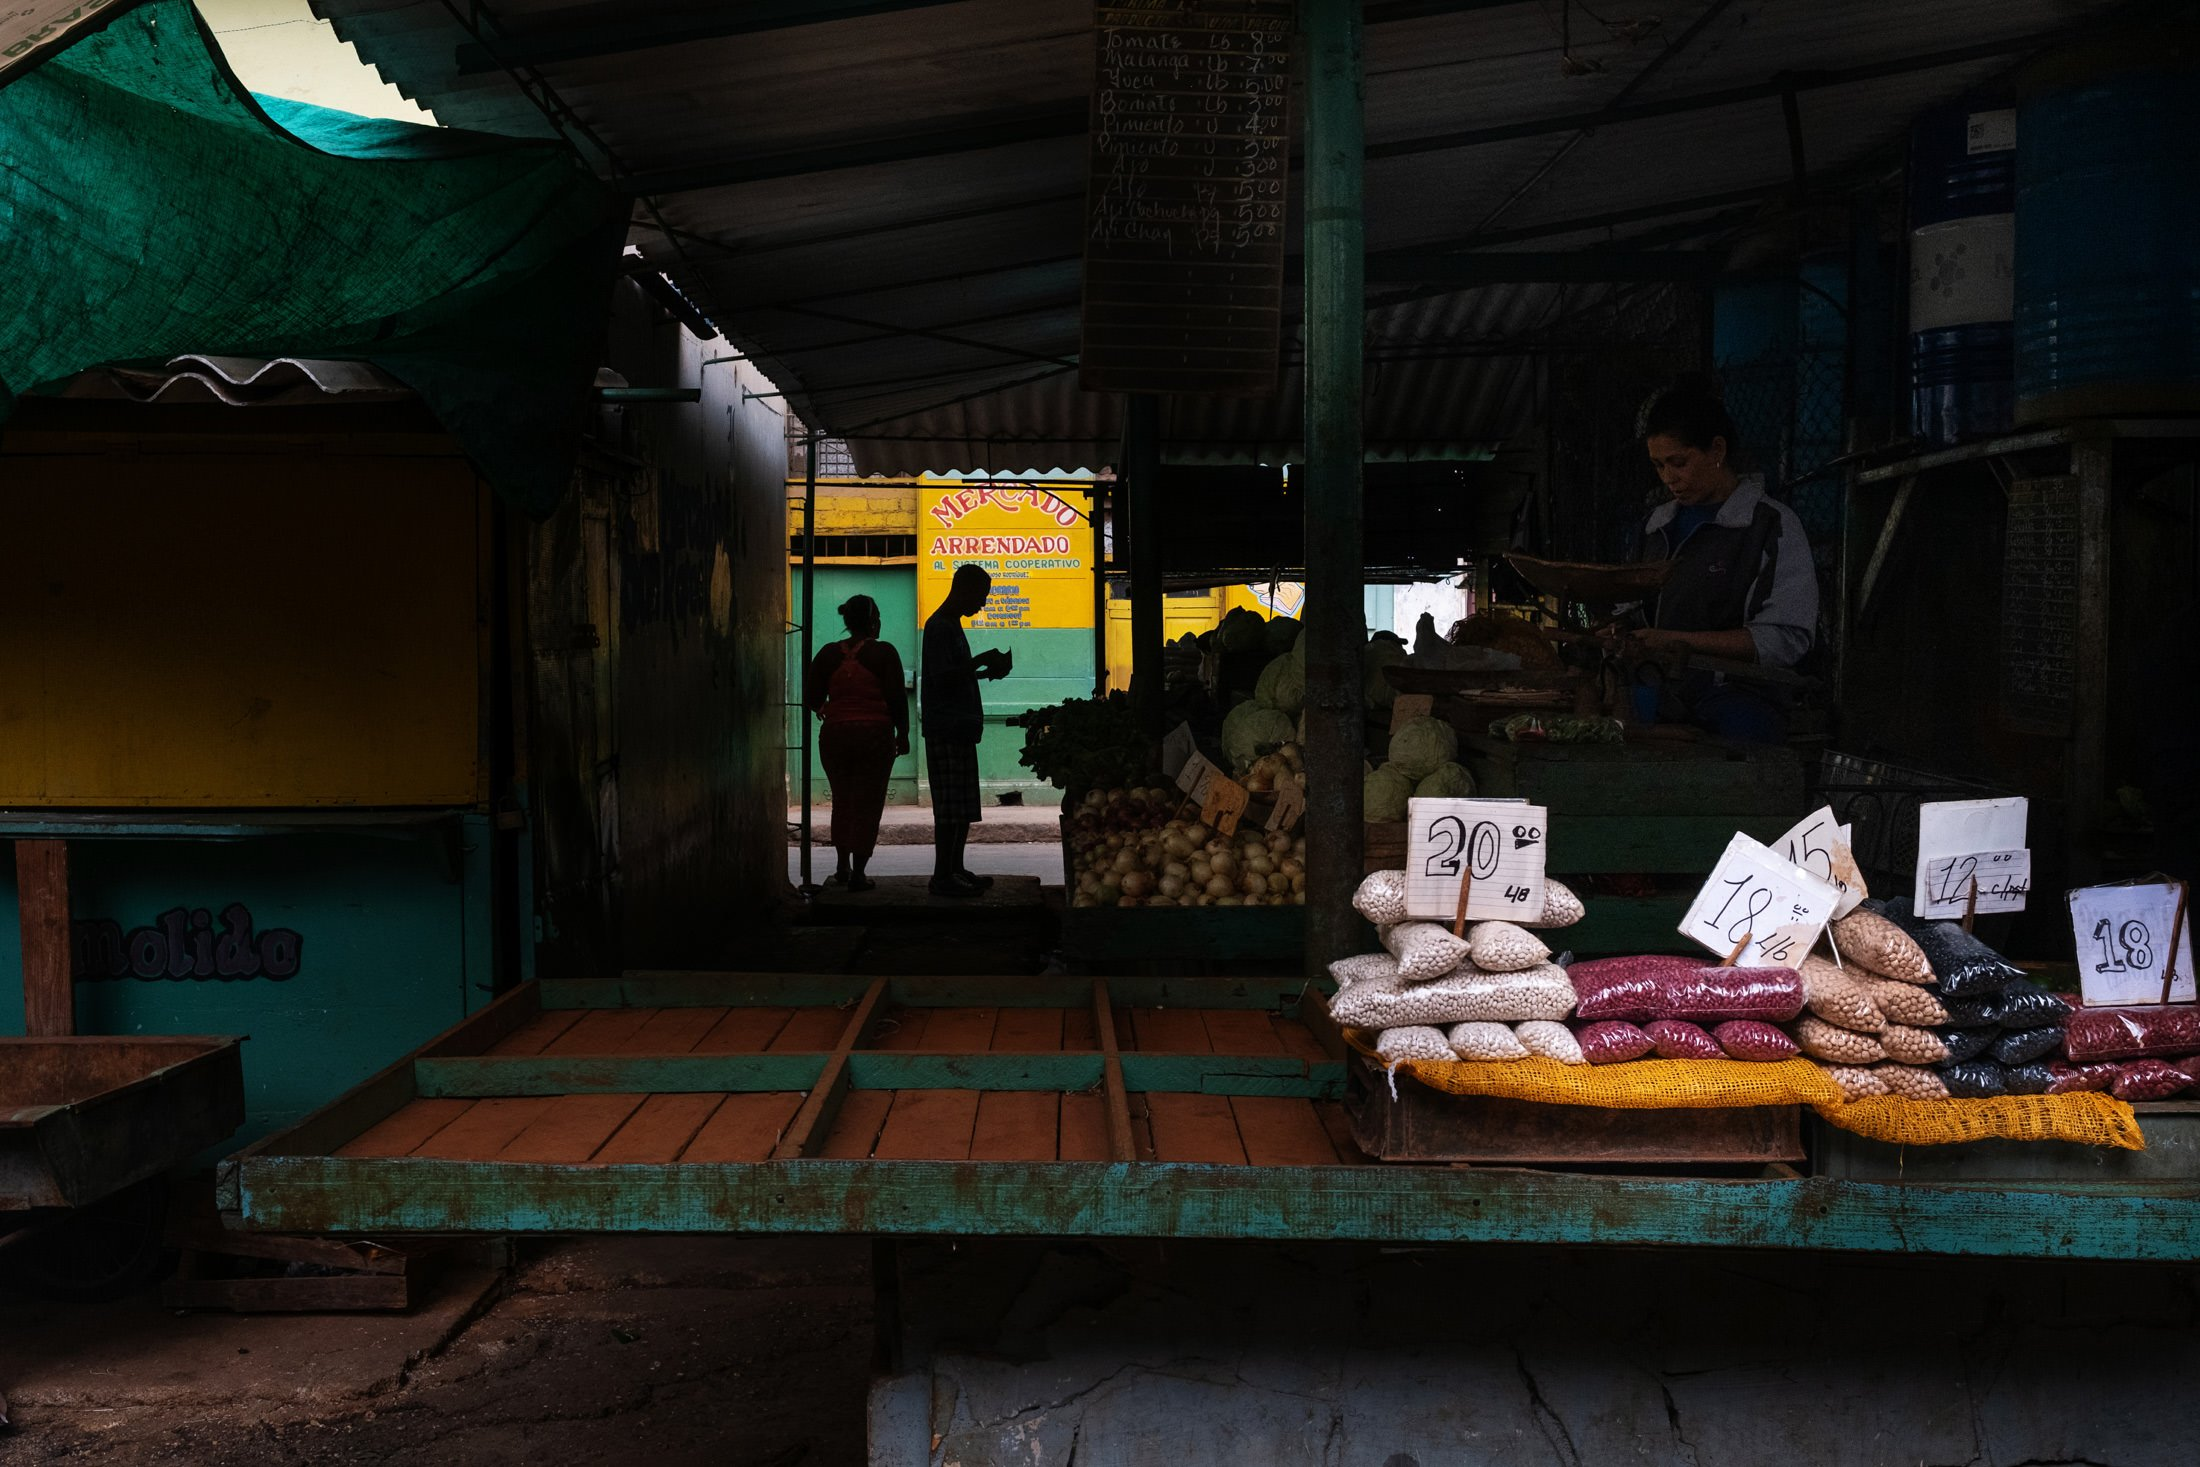 vegetable stall with two people silhouetted